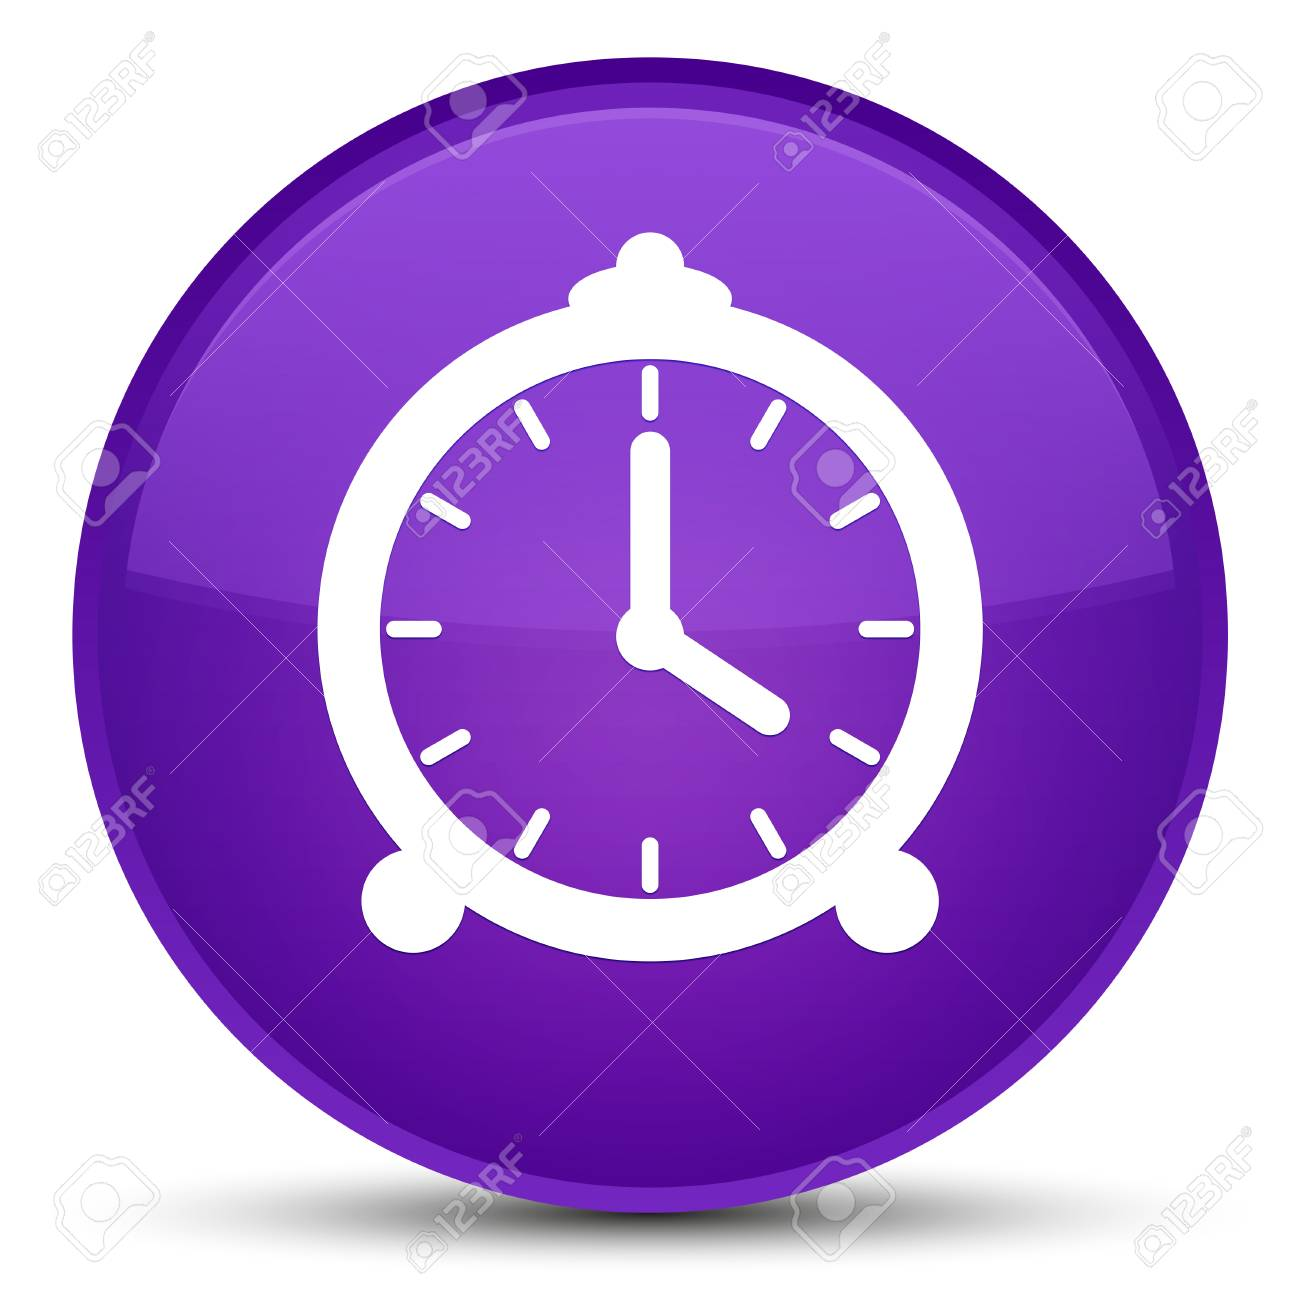 Alarm Clock Icon Isolated On Special Purple Round Button Abstract Stock Photo Picture And Royalty Free Image Image 89526049